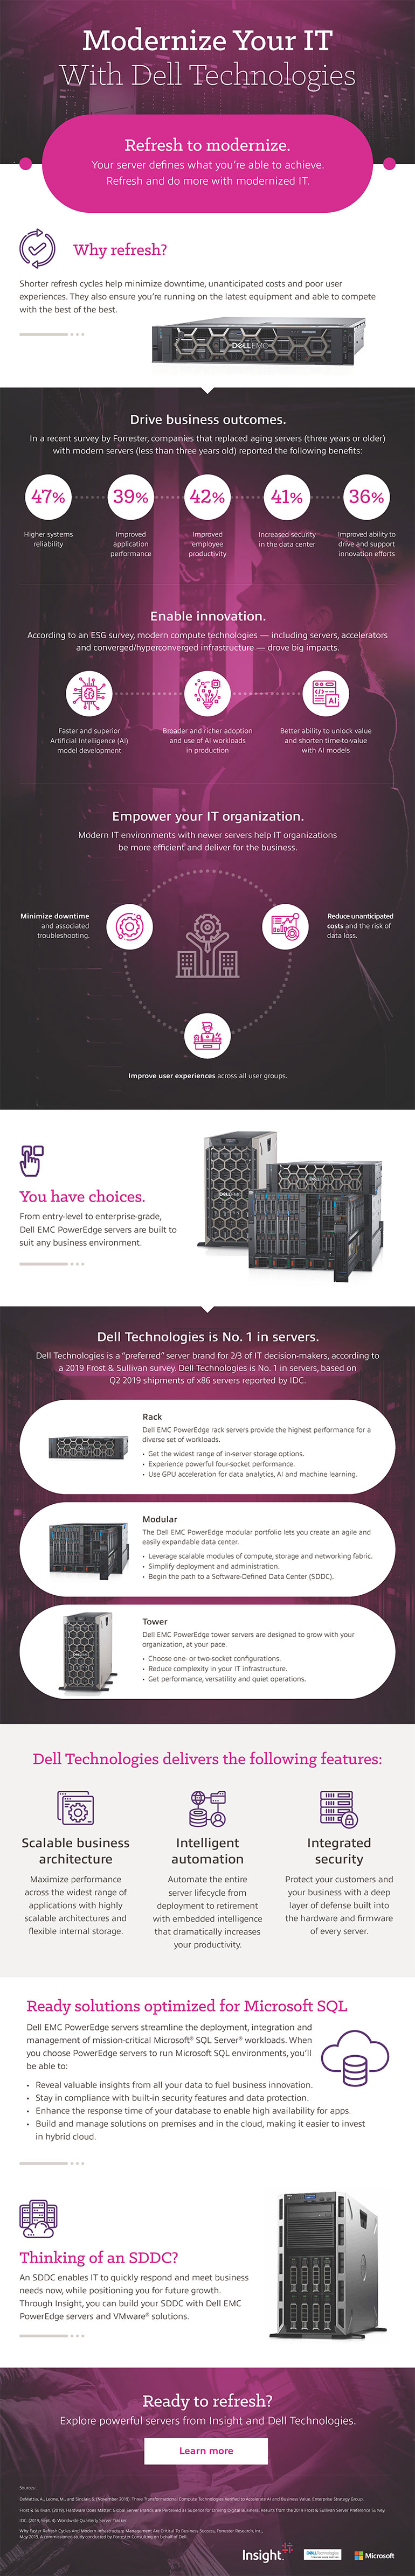 Modernize Your IT With Dell Technologies infographic as transcribed below